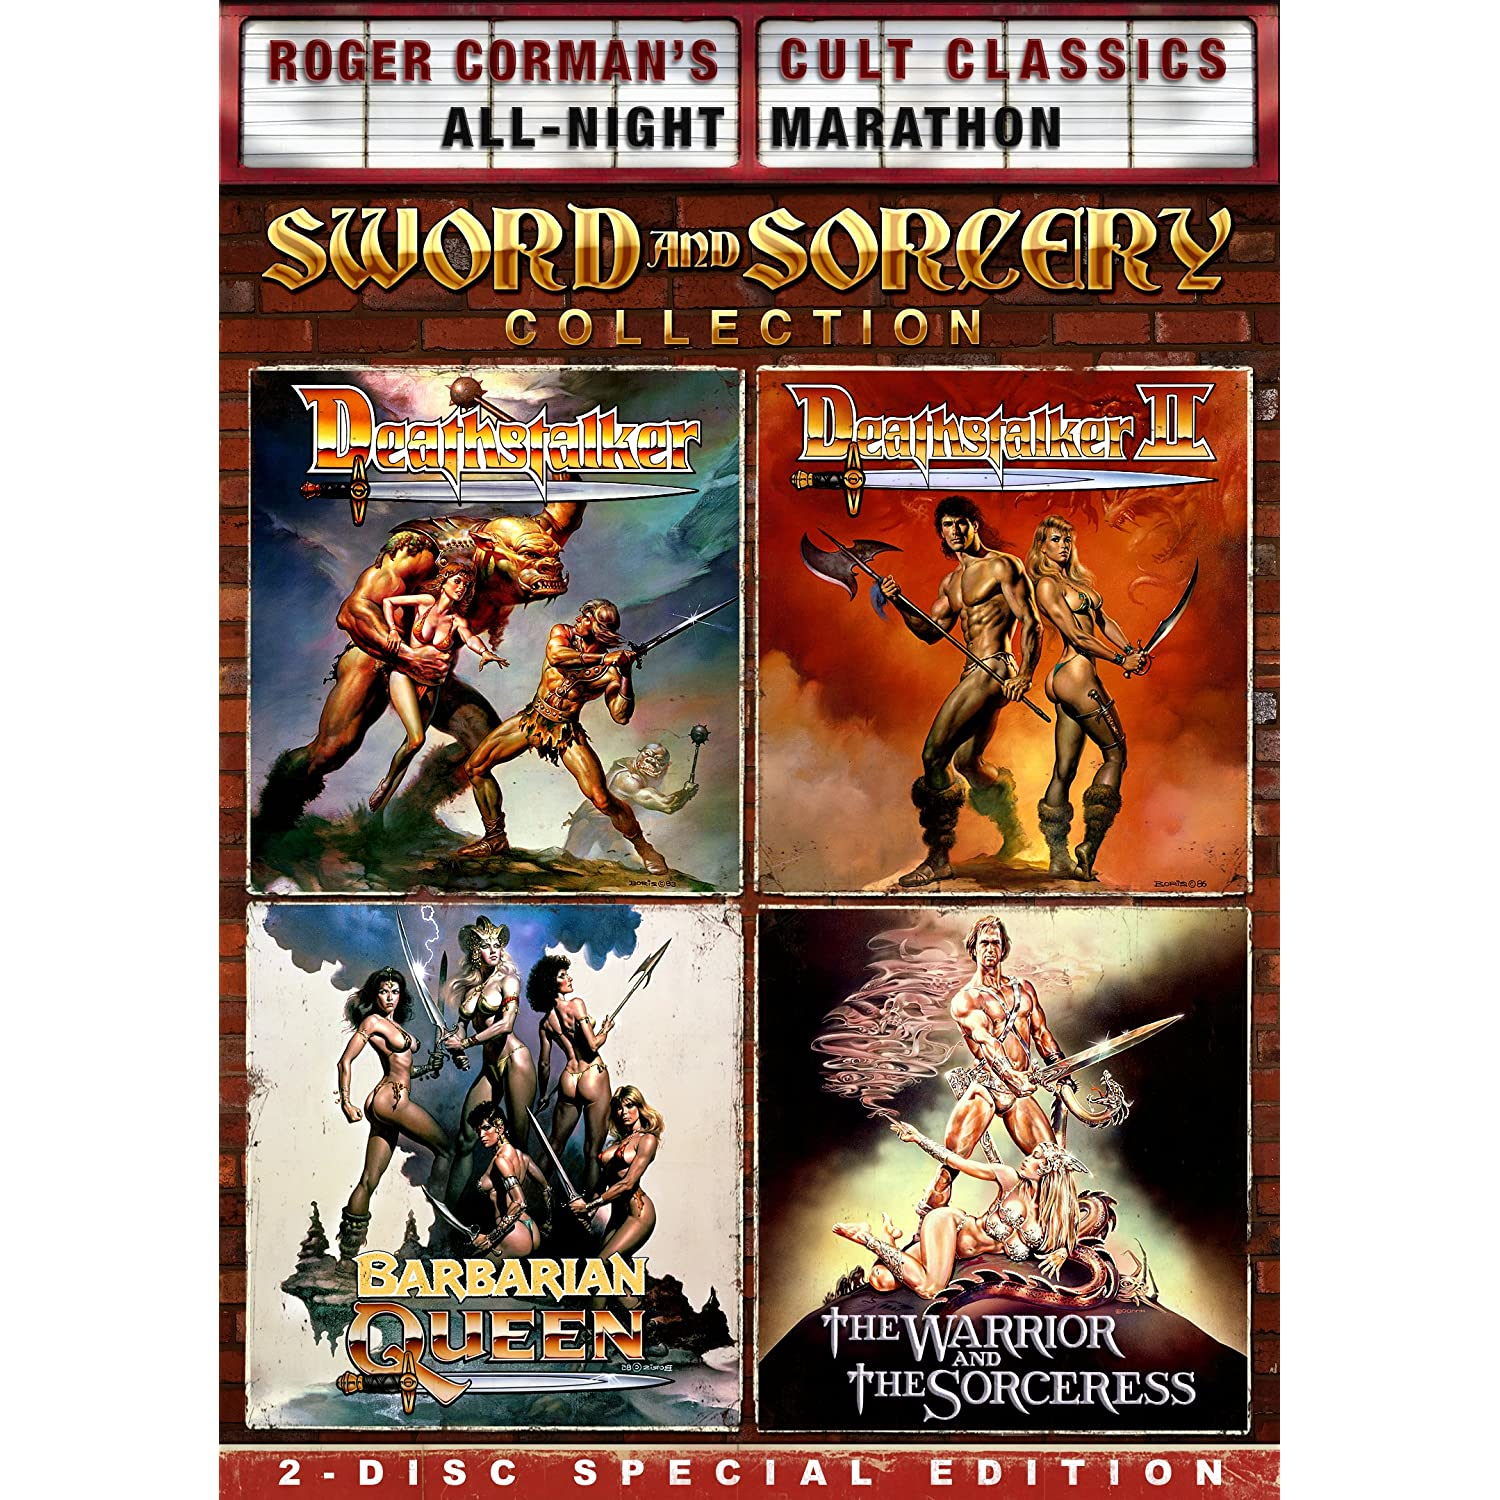 Roger Corman Sword and Sorcery